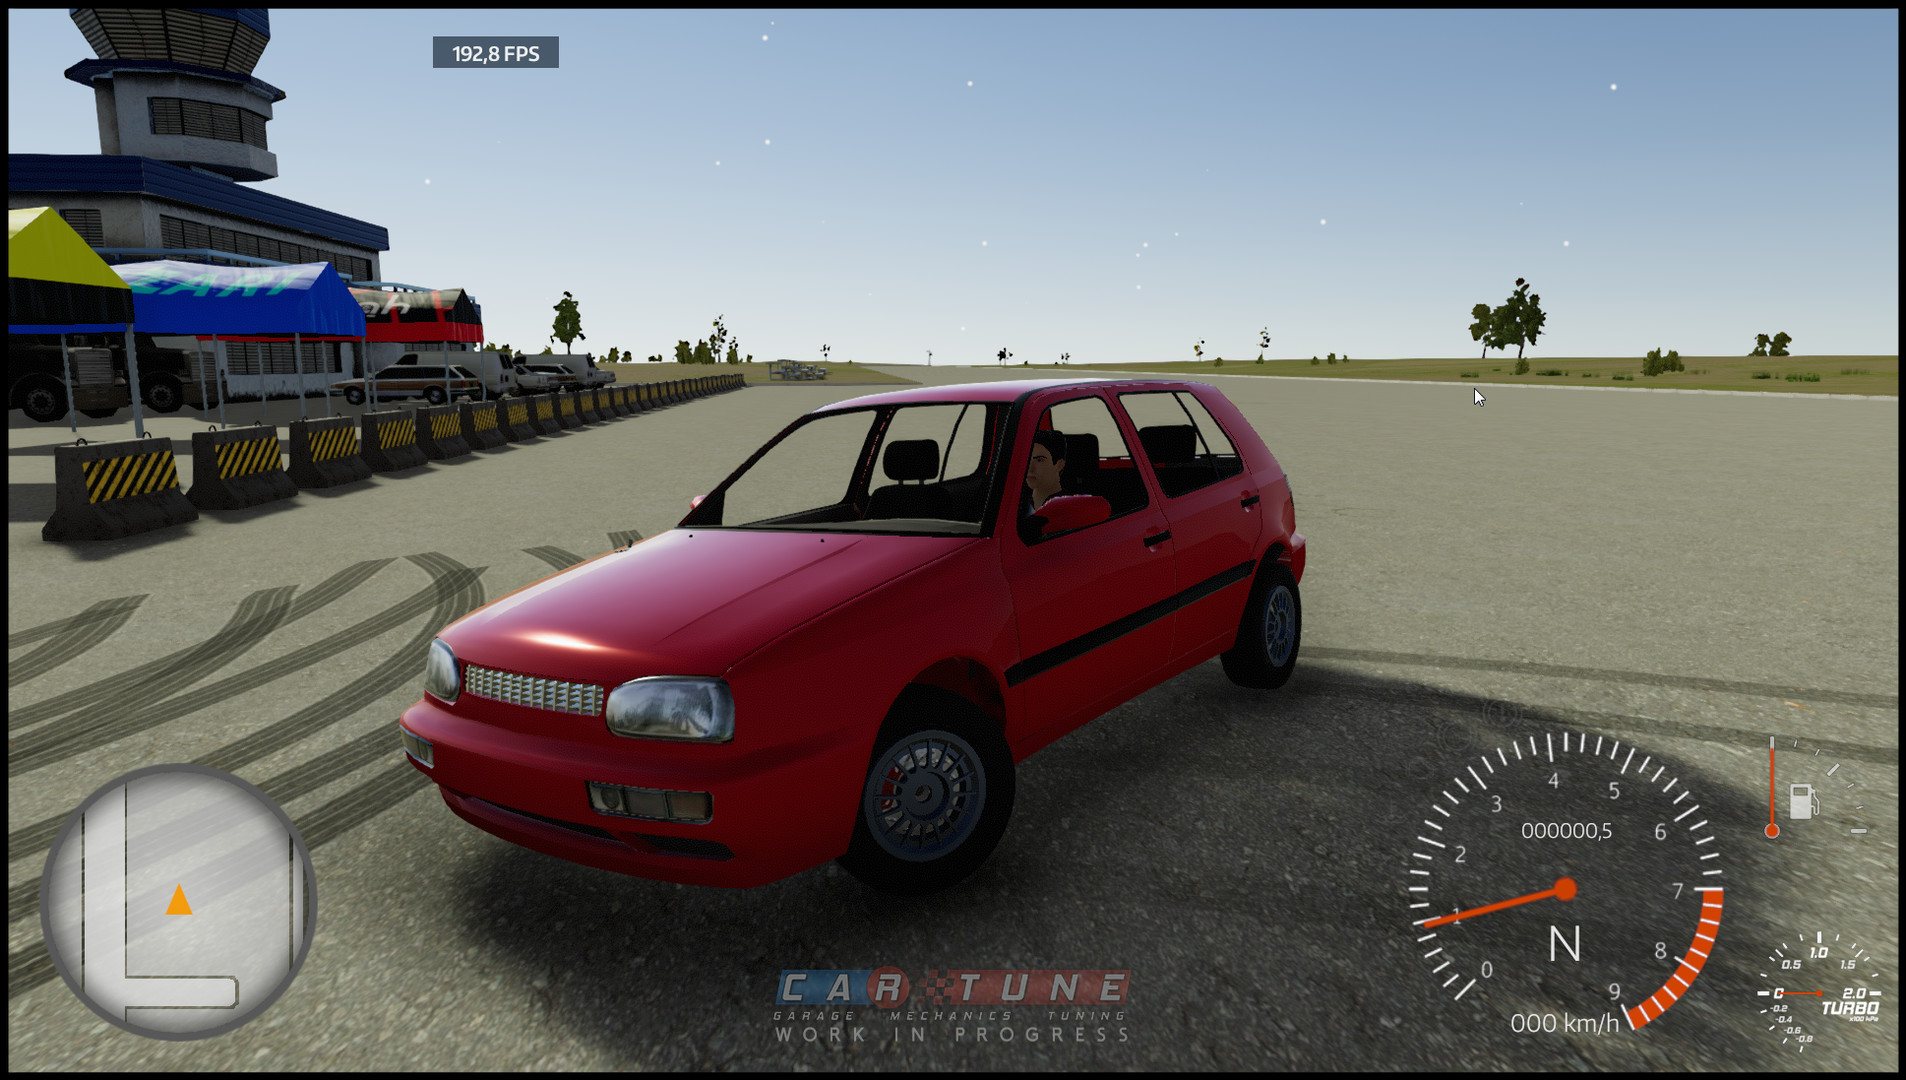 CAR TUNE: Project on Steam